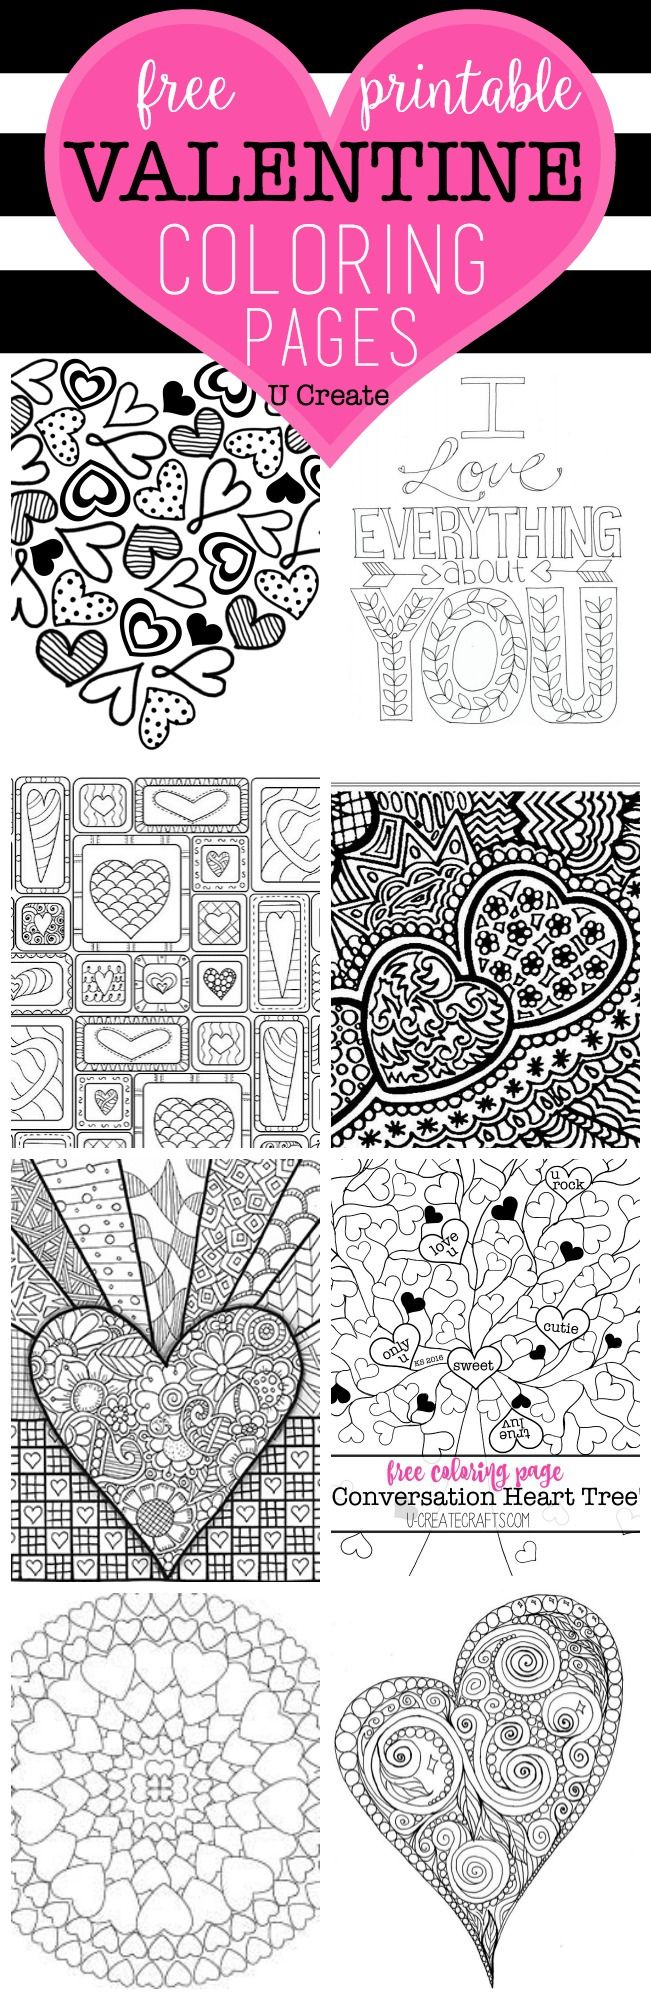 Love you coloring pages coloring page be my valentine coloring - The Free Valentine Coloring Pages Are Here You Can T Walk Into A Store Without Seeing Those Popular Adult Coloring Books Everywhere And You Are Sure To